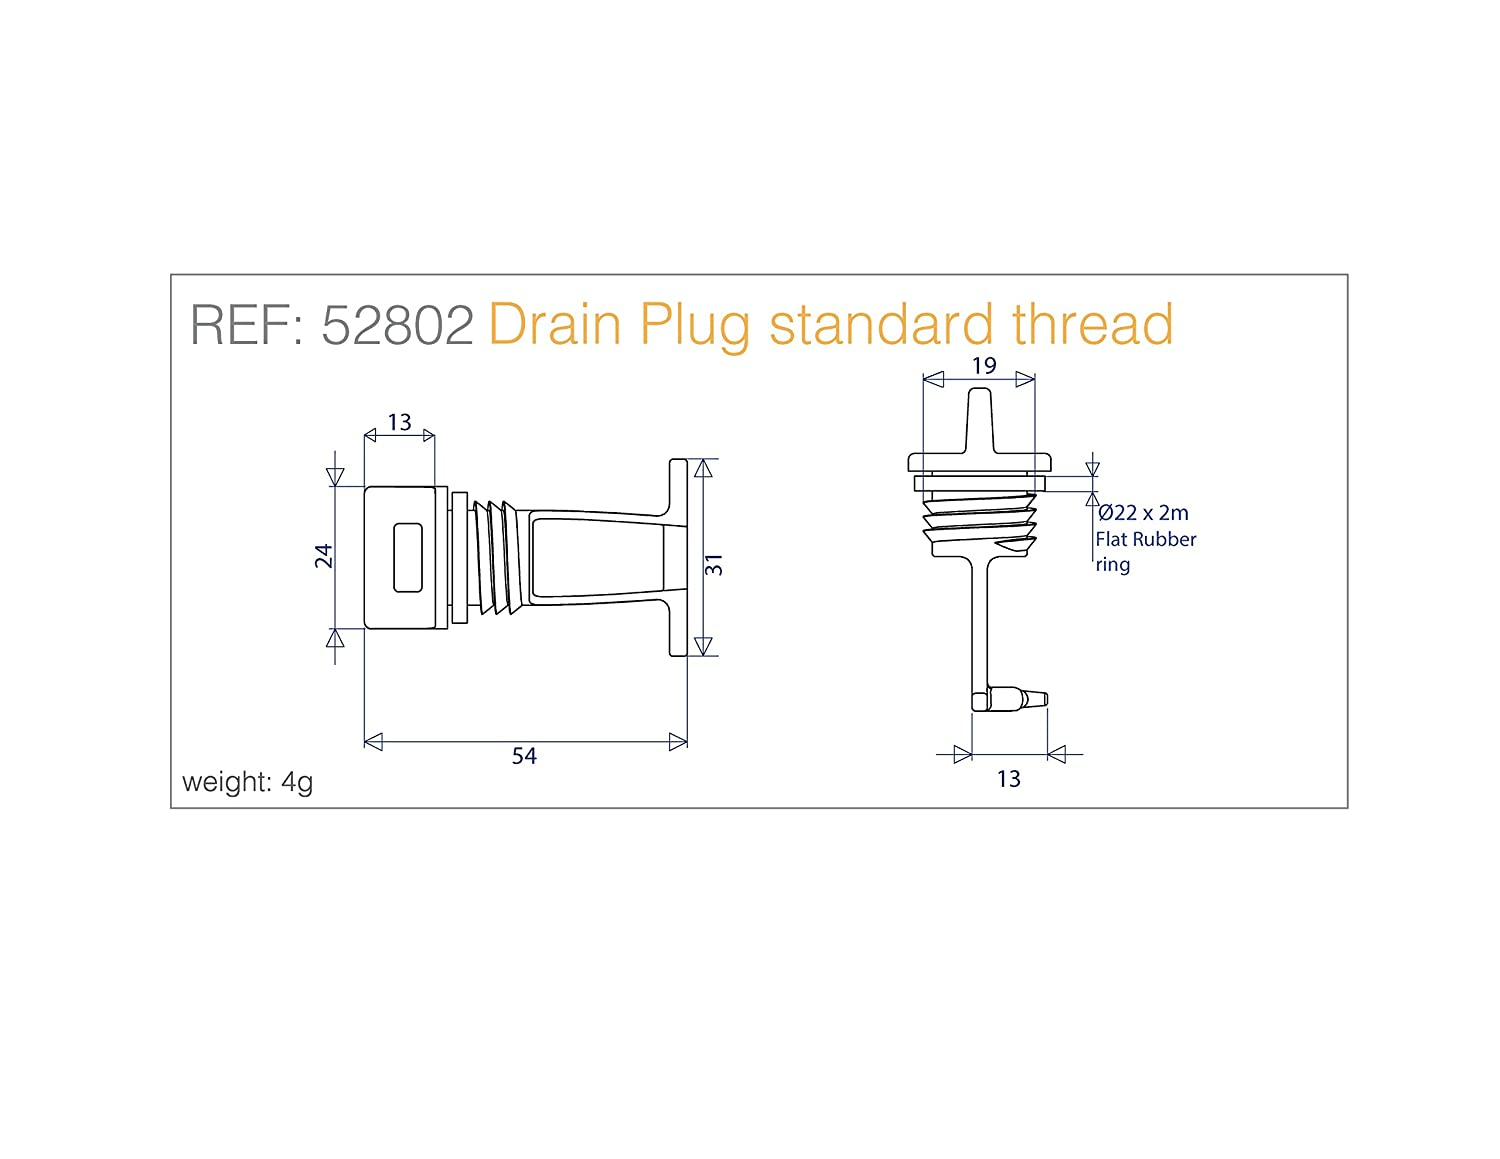 H2o Kayaks Direct Drain Plug Sports Outdoors Pelican Pedal Boat Wiring Diagram